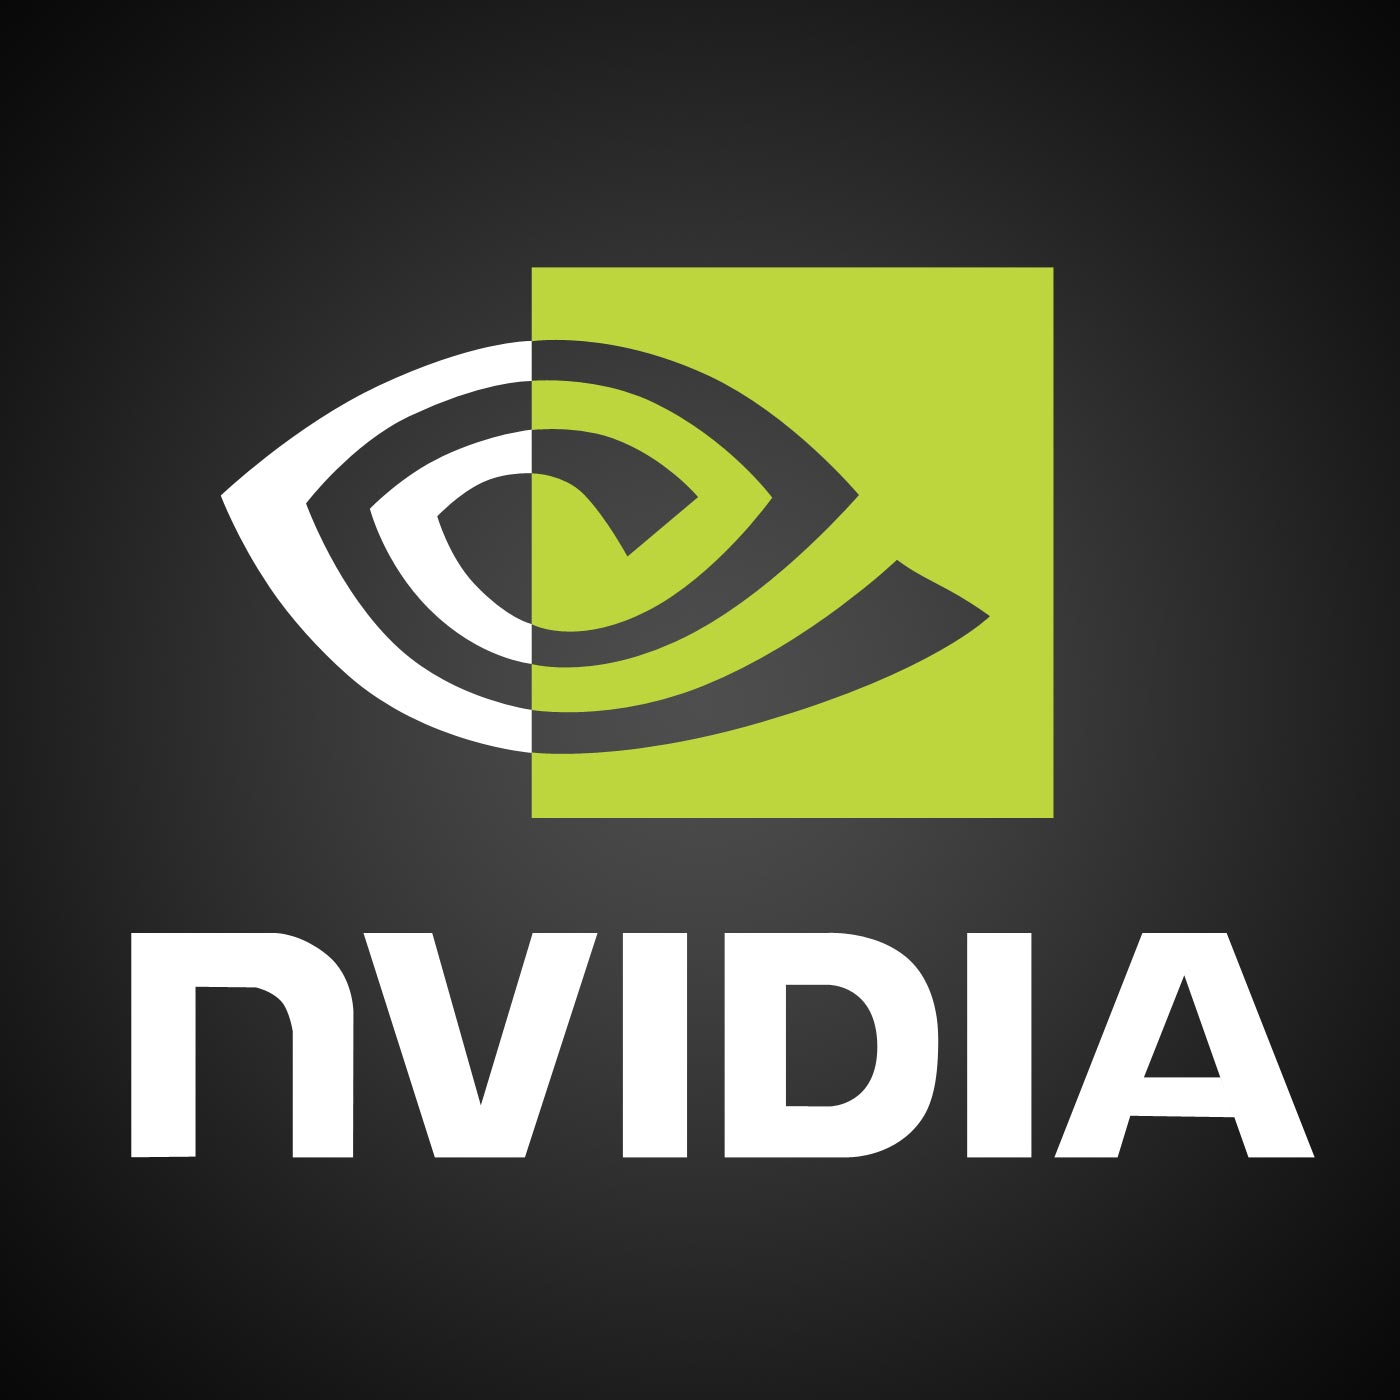 Nvidia Logo Hd Full Hd Pictures